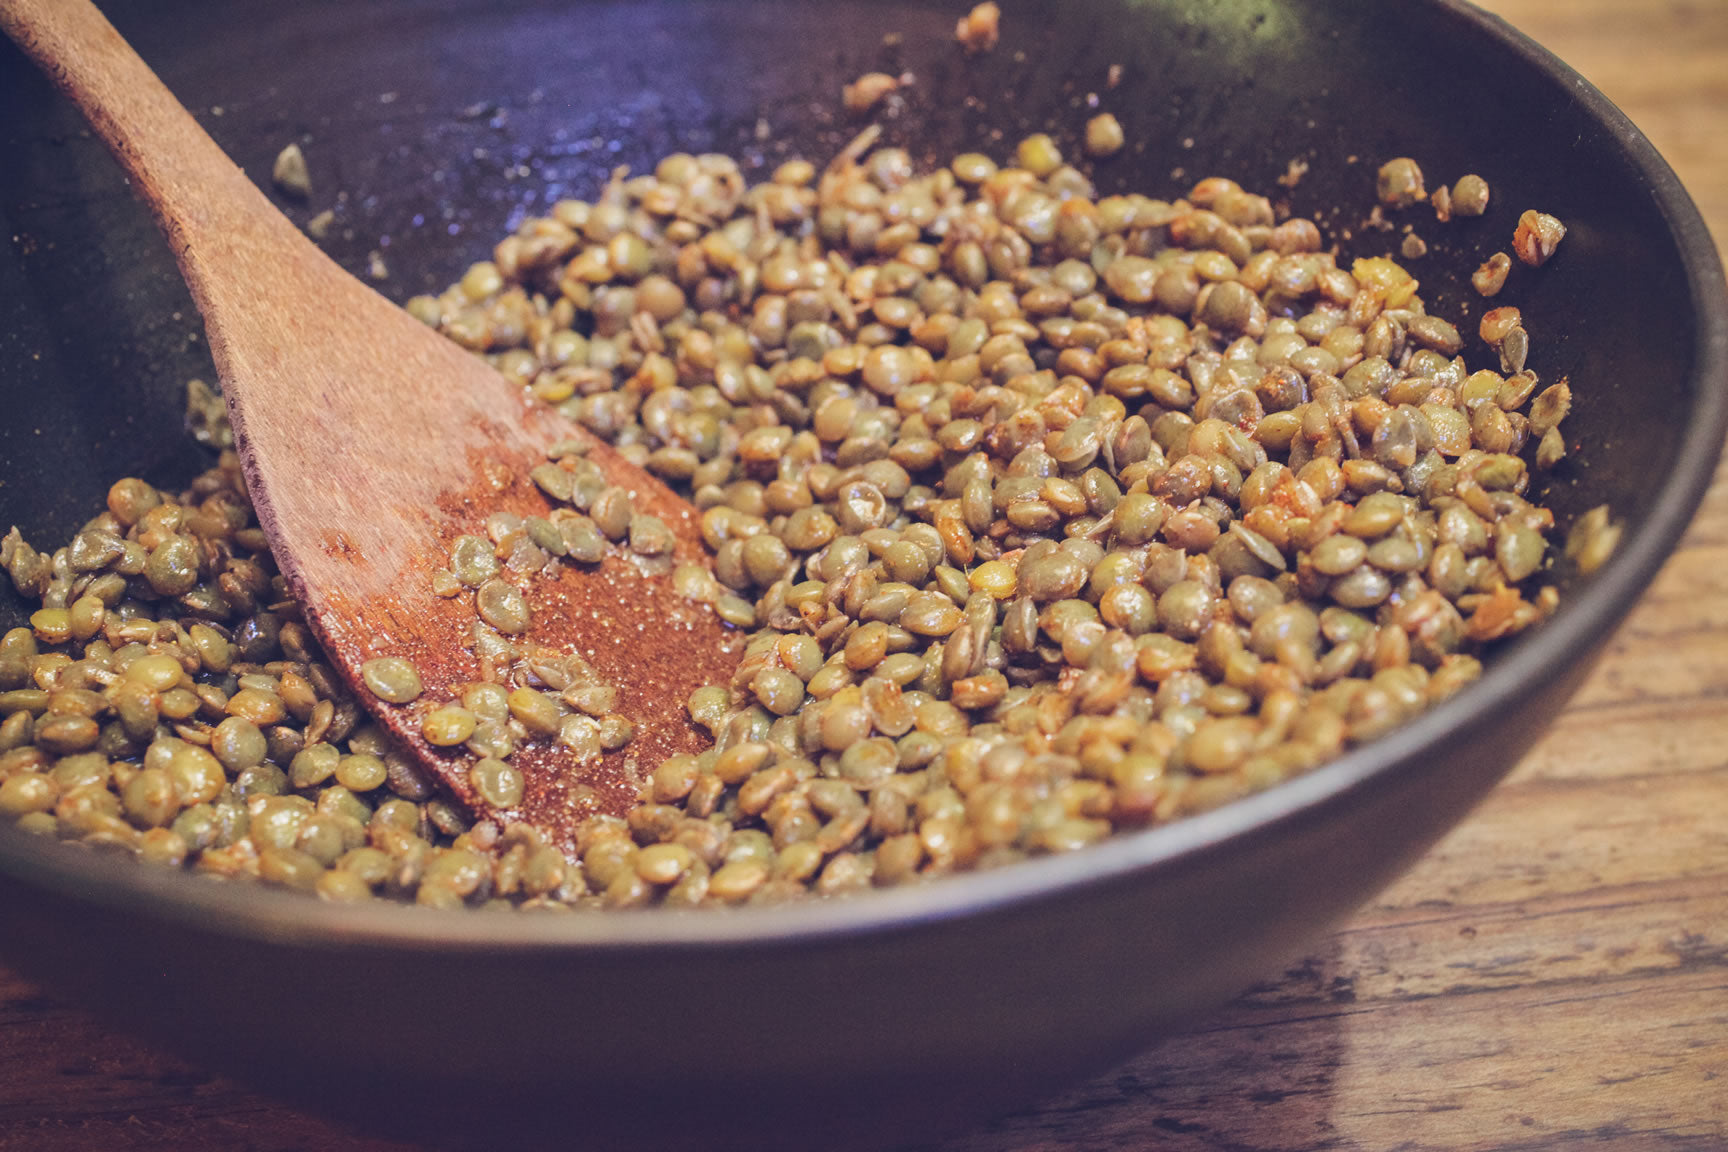 toss lentils in dressing